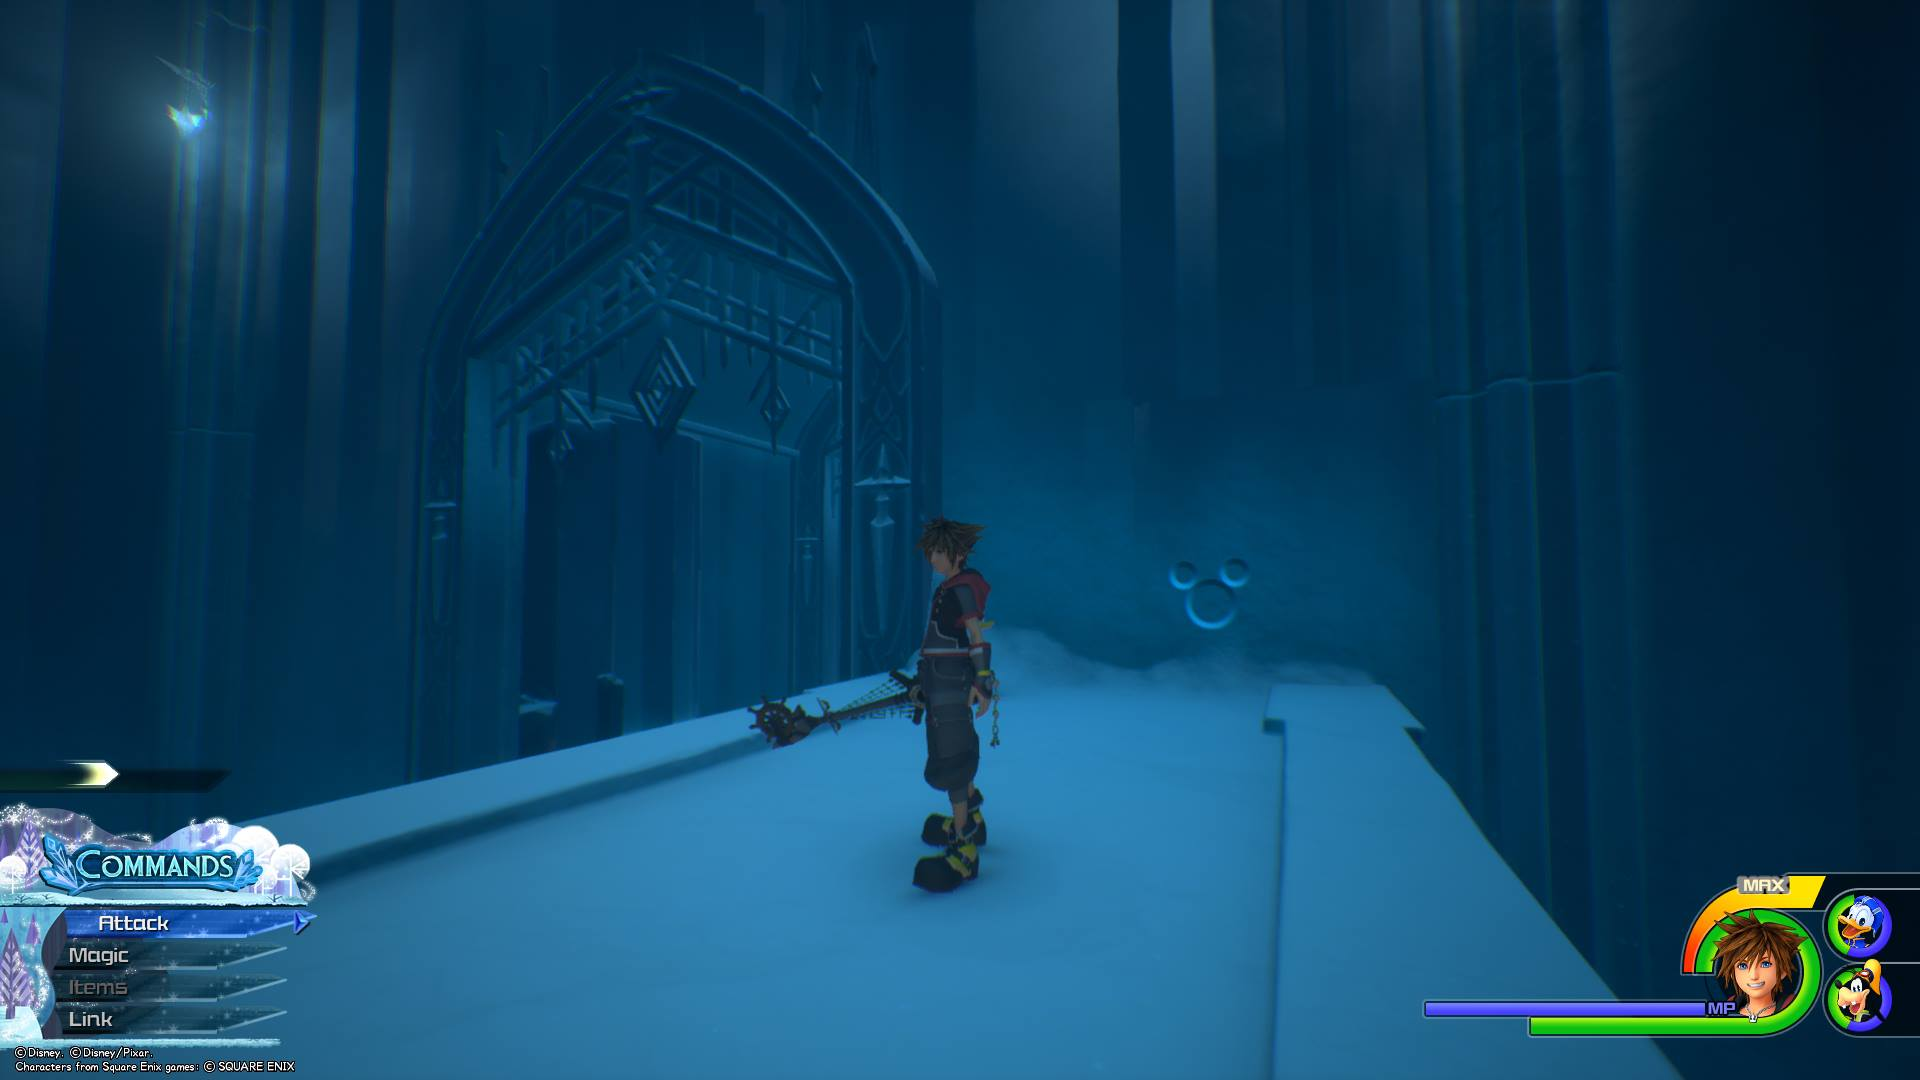 Head up through the Middle Tier of the Labyrinth until you encounter a room with an archway. Jump up to the top and look to your left, and you'll see the tenth Lucky Emblem.